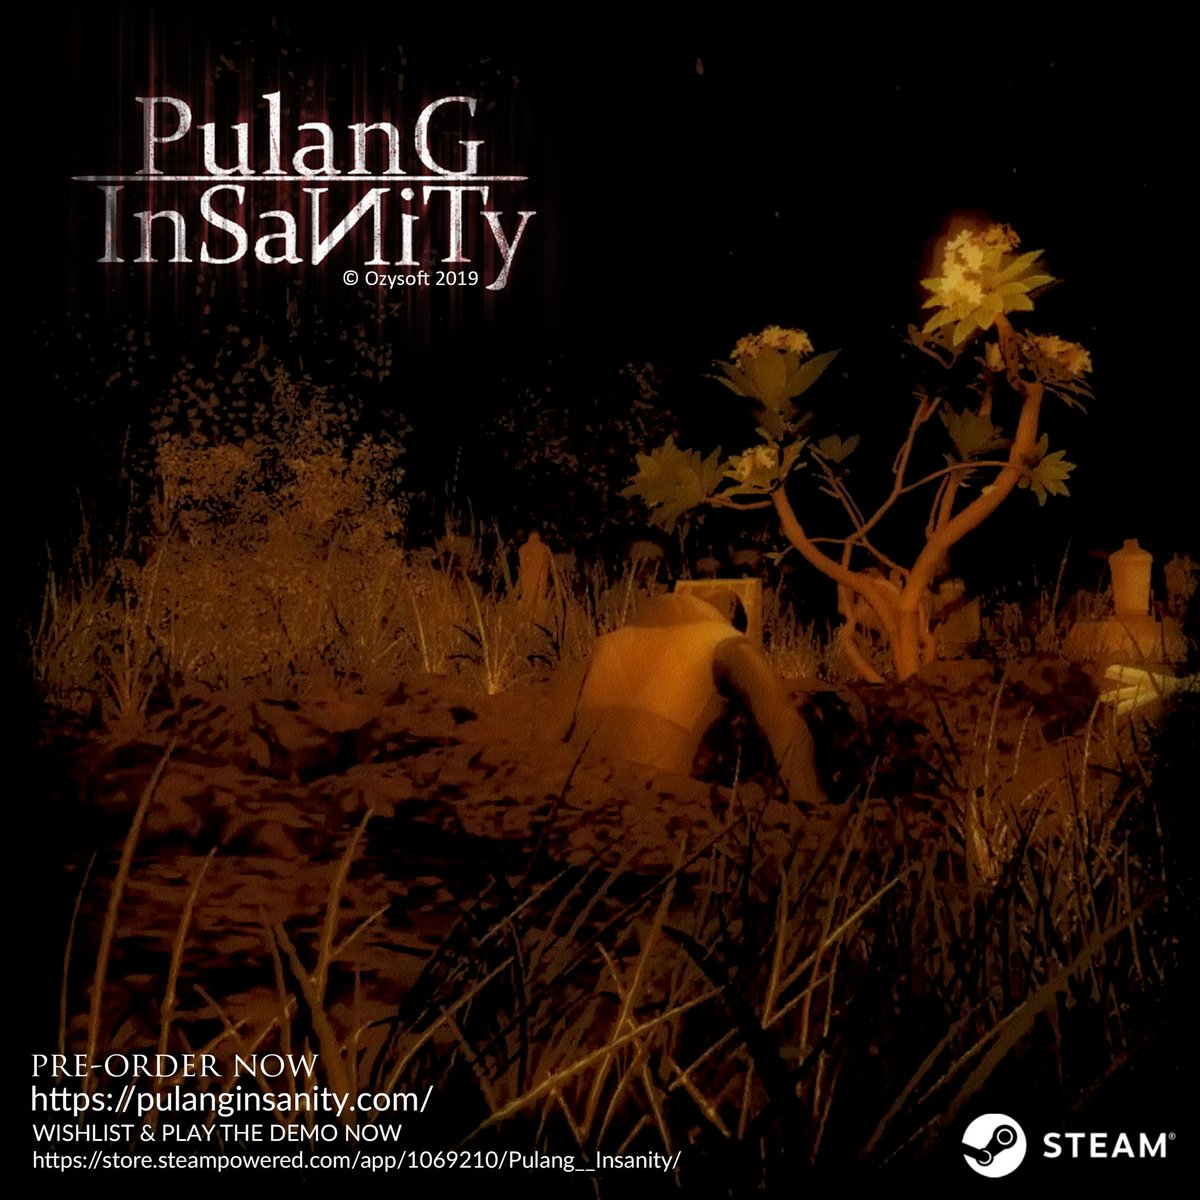 WISHLIST & PLAY THE DEMO NOW https://store.steampowered.com/app/1069210/Pulang__Insanity/ …  Website : http://pulanginsanity.com/   #EnterInsanity #ComingSoon #Games #Steam #Indonesia #horror #SurvivalHorror #PsychologicalHorror #pulanginsanity #NewDemoUpdatepic.twitter.com/JlVVNJTclS